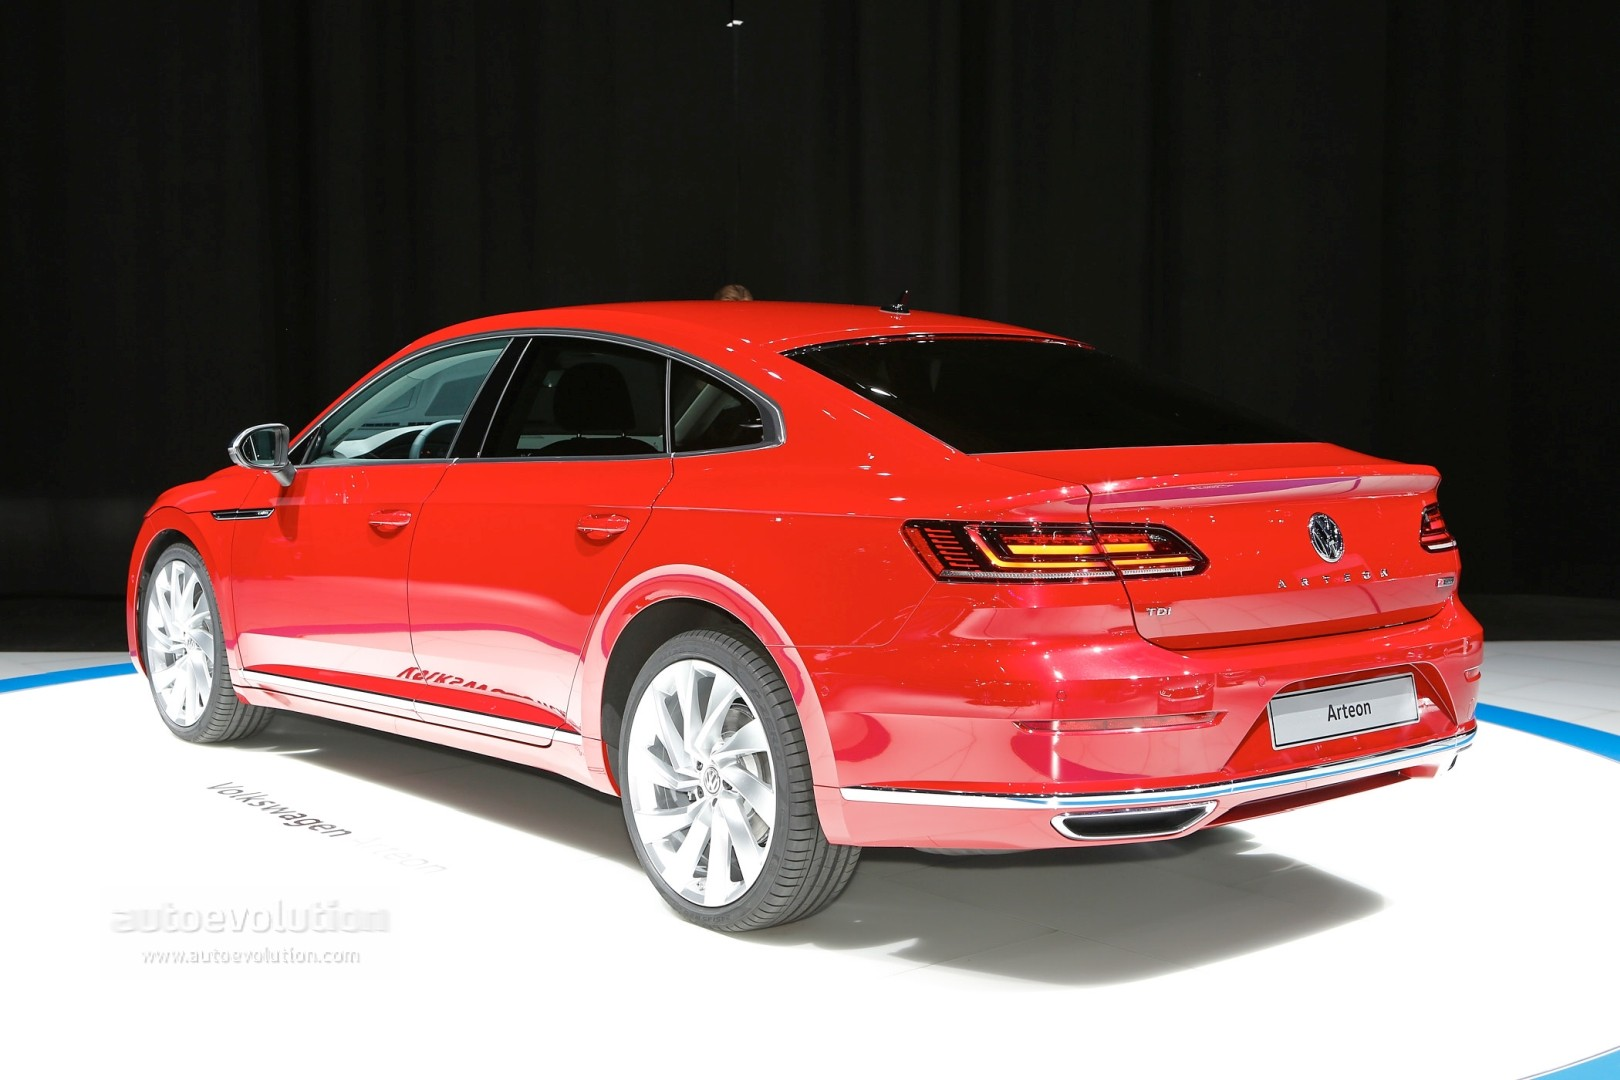 VW Arteon Configurator Launched in Germany, Available With 240 and 280 HP - autoevolution